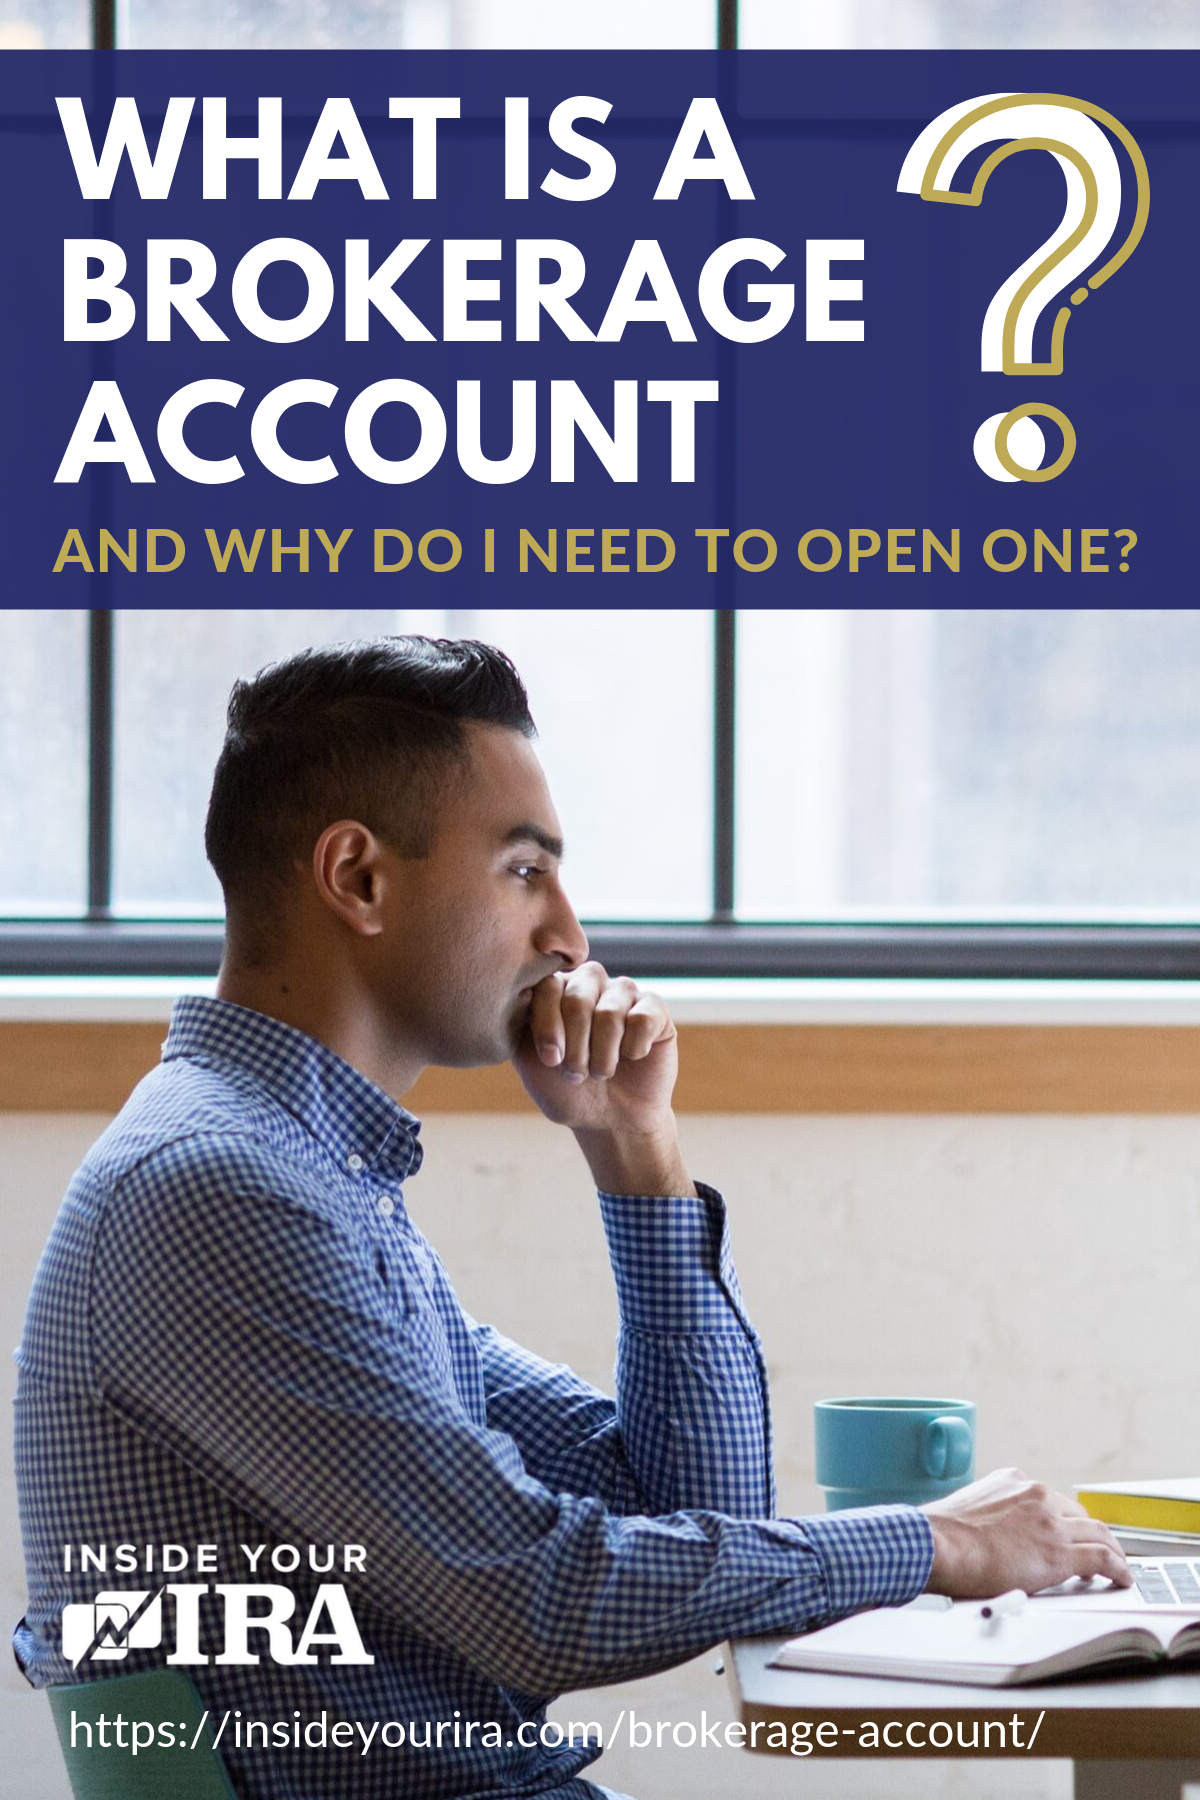 What Is A Brokerage Account And Why Do I Need To Open One? | Inside Your IRA https://www.insideyourira.com/brokerage-account/